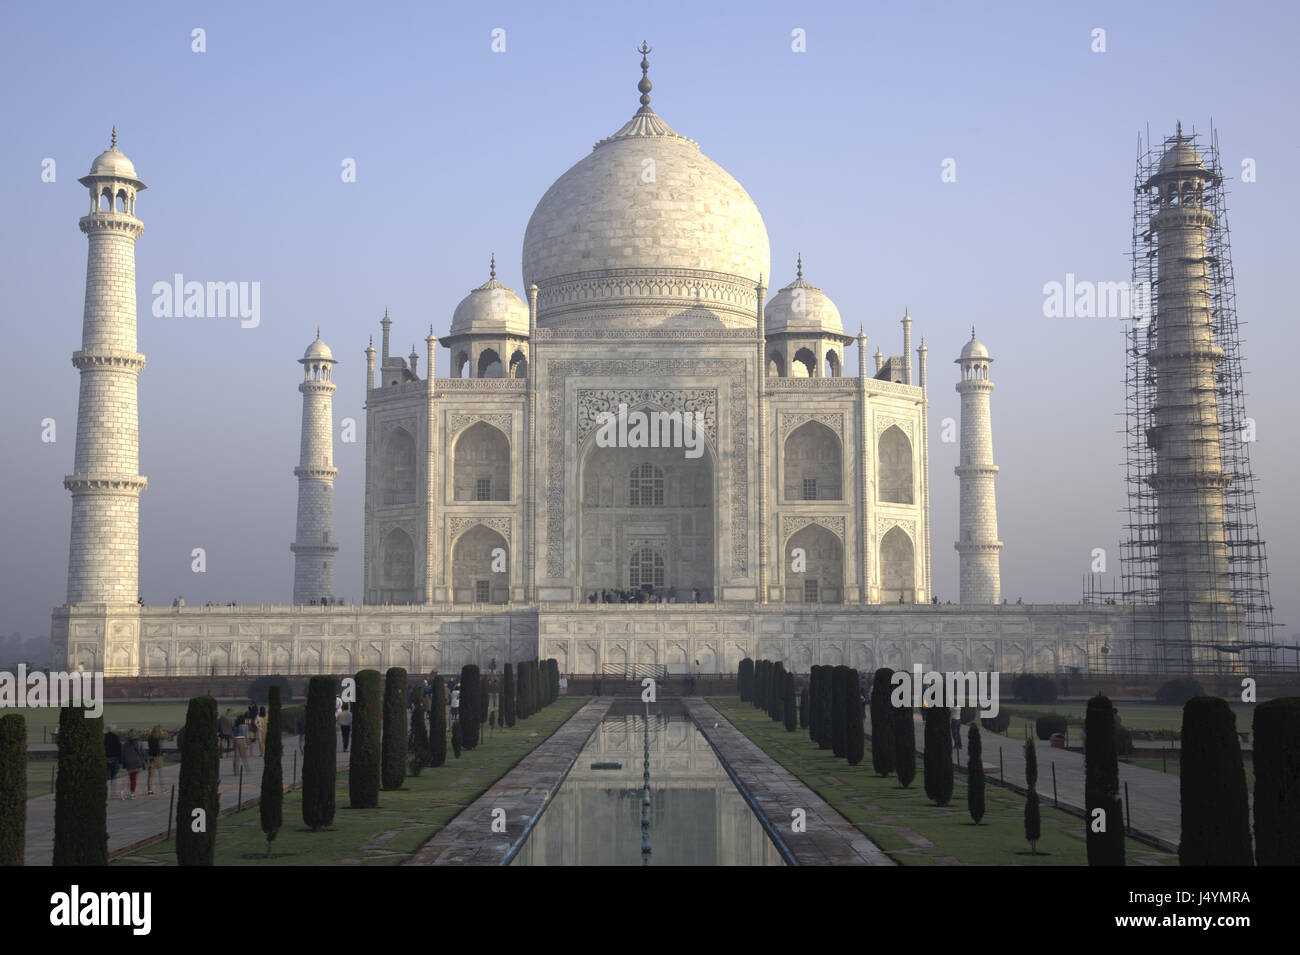 View of the Taj Mahal under construction, Agra, India Stock Photo